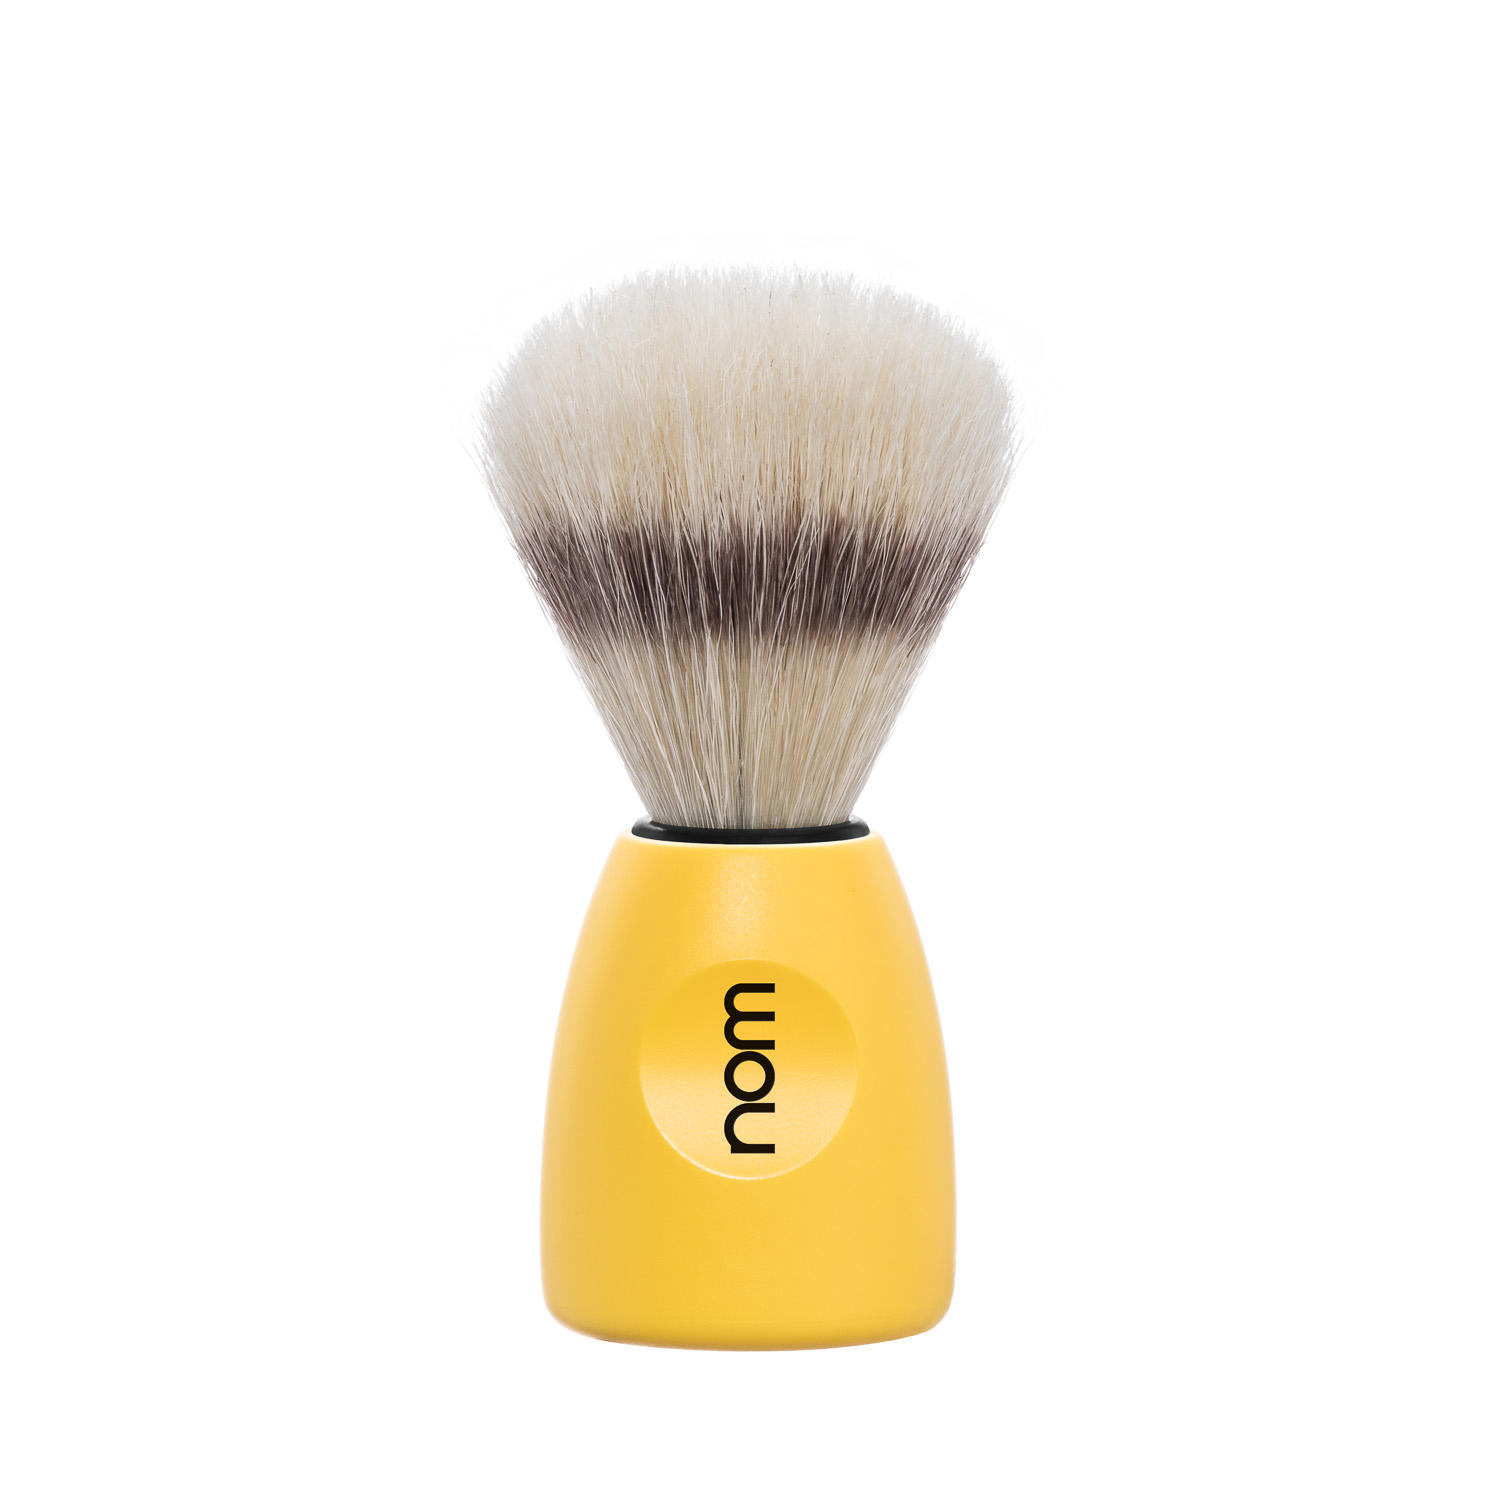 LASSE41LE NOM, LASSE Lemon, pure bristle shaving brush